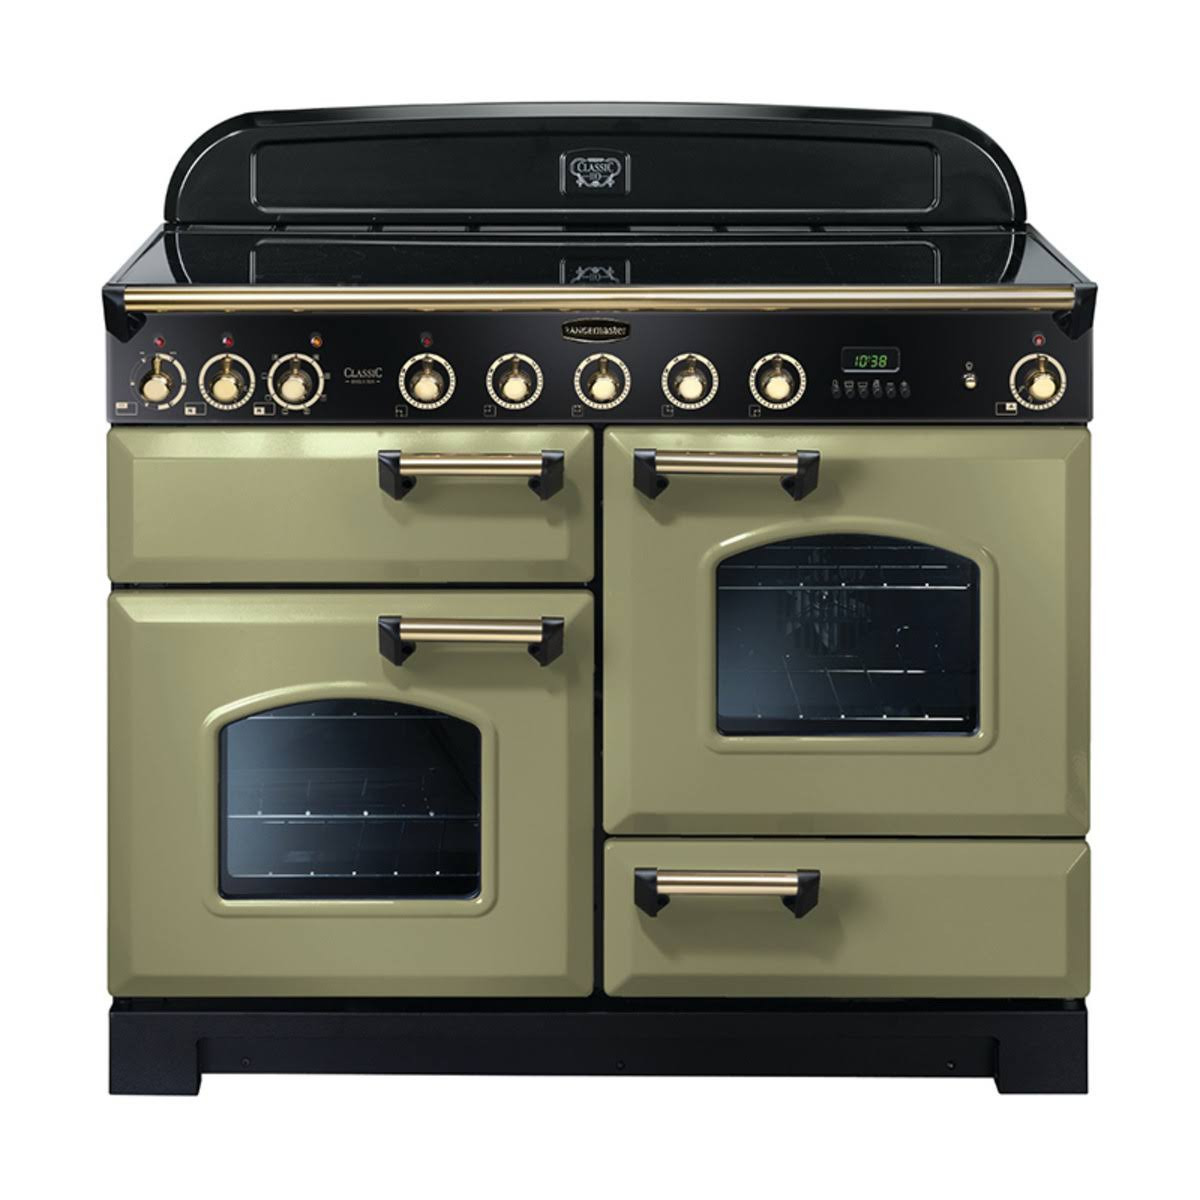 Rangemaster Classic Deluxe 110 Induction Range Cooker Olive Green/Brass Trim CDL110EIOG/B 114550